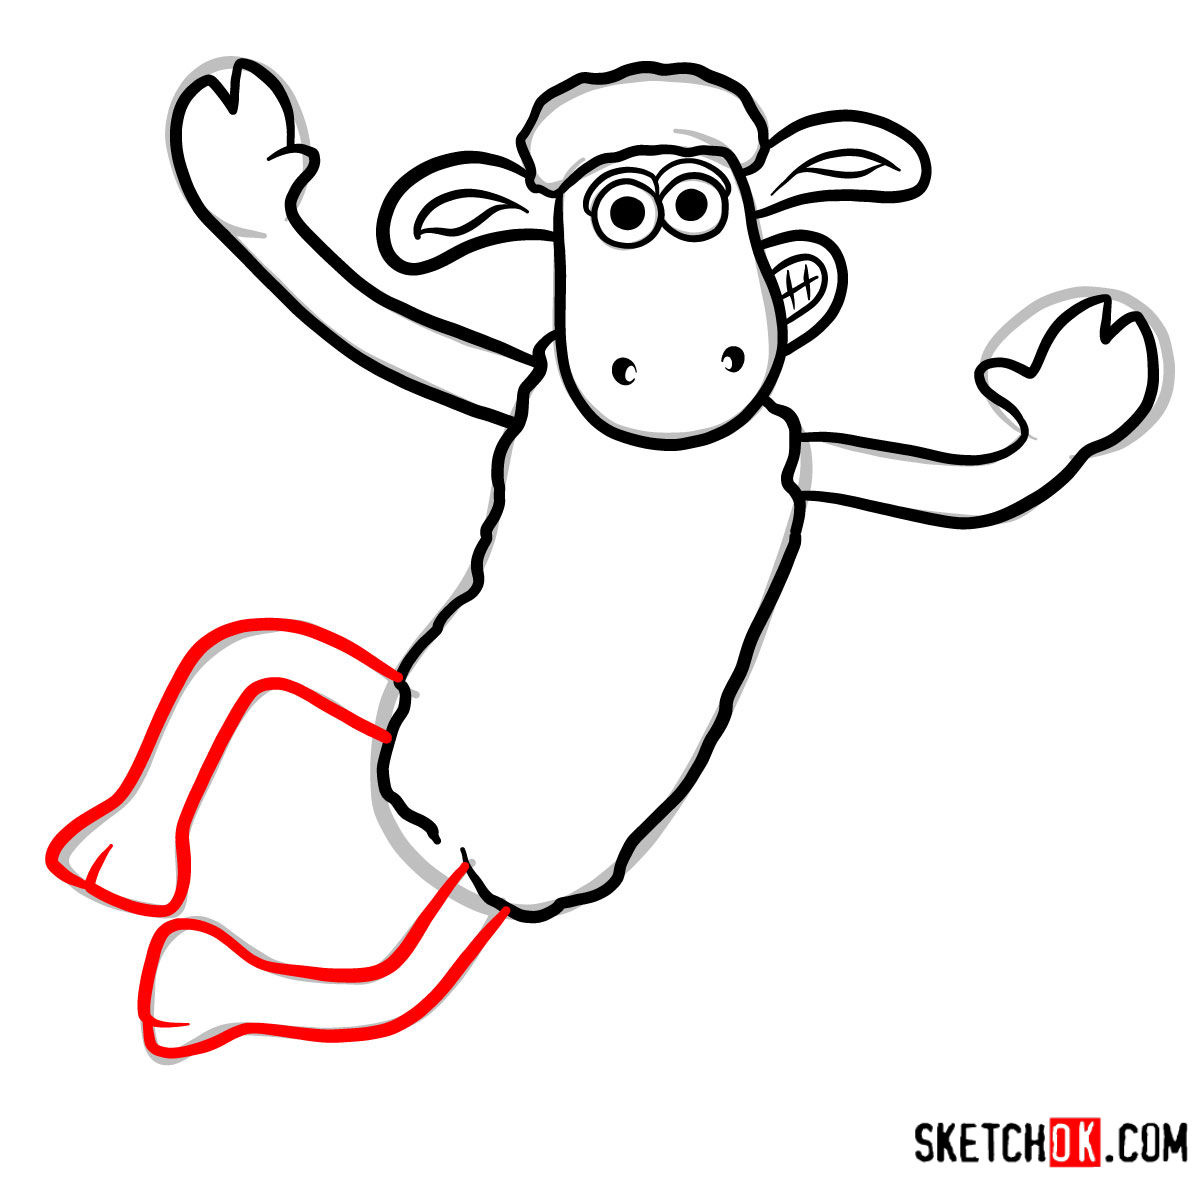 How to draw Shaun the Sheep - step 06